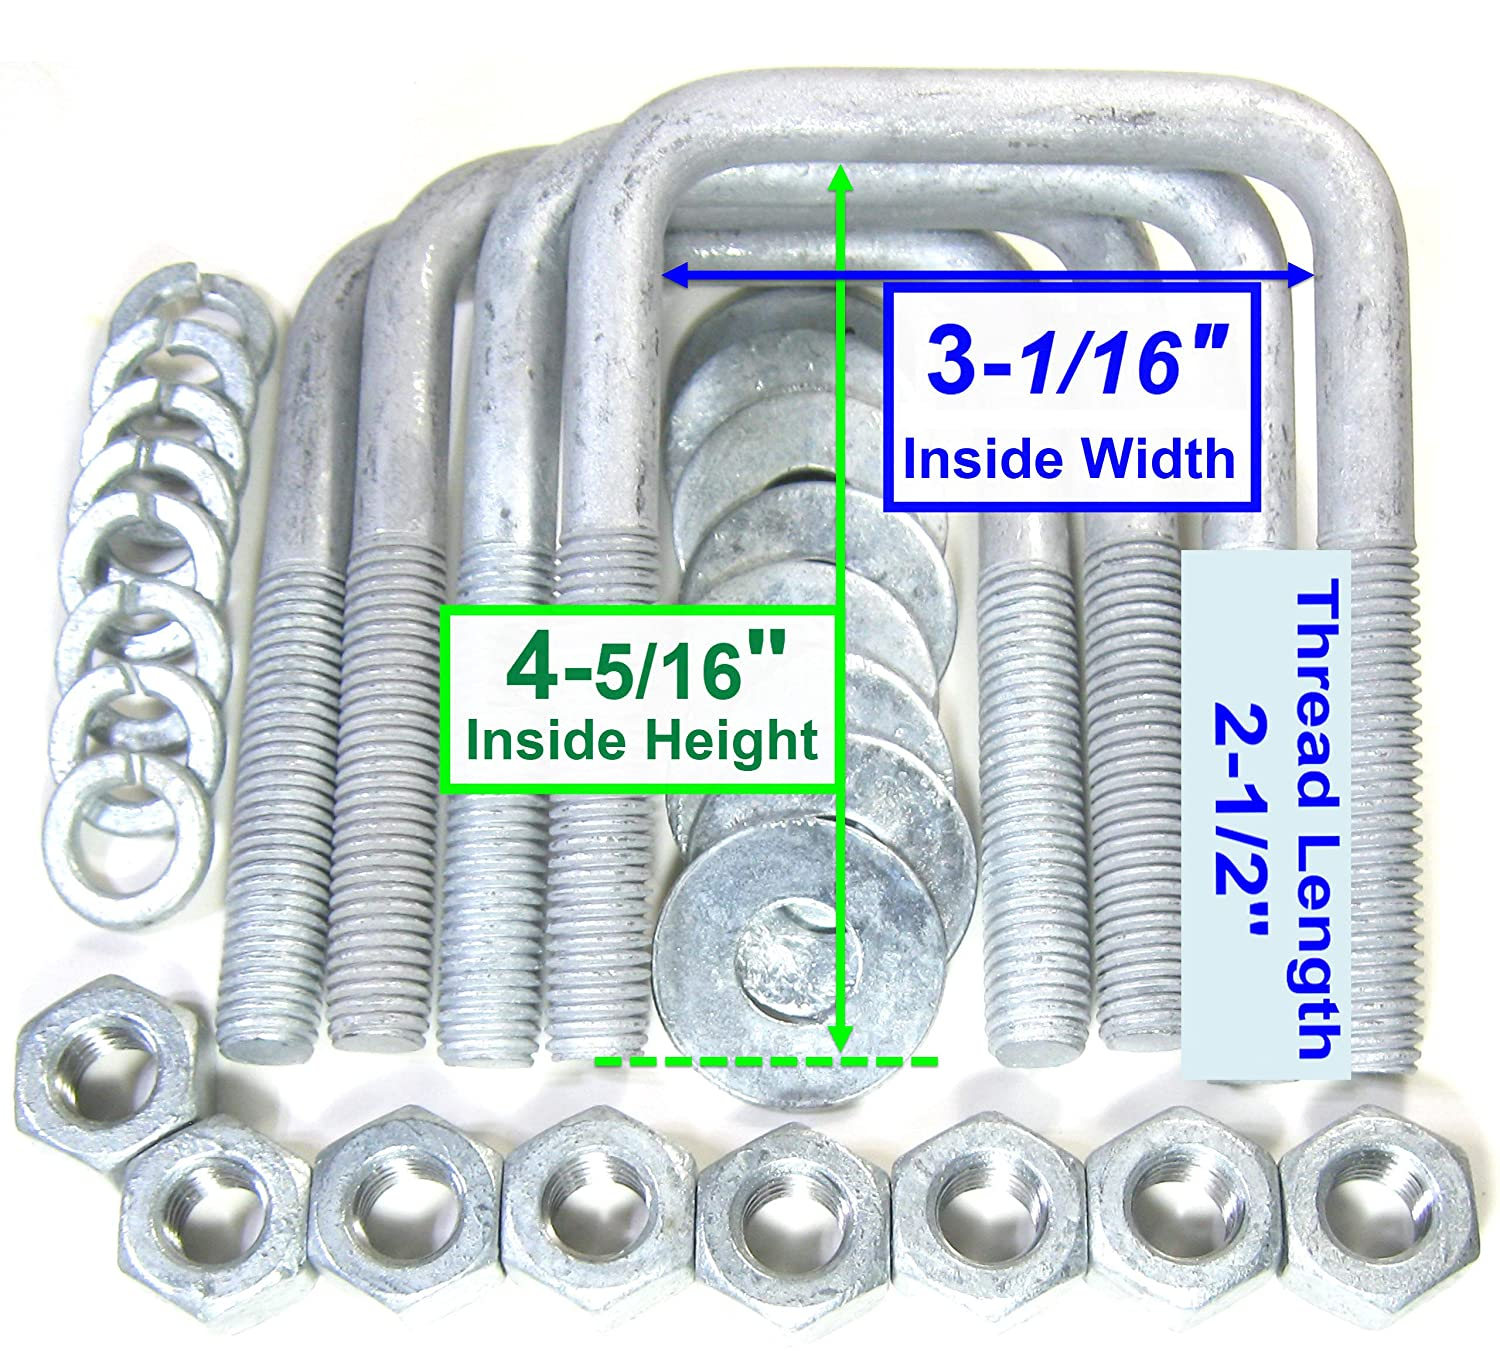 12mm Square Zinc Plated U Bolts For Boat Trailers 60mm Width x 100mm length